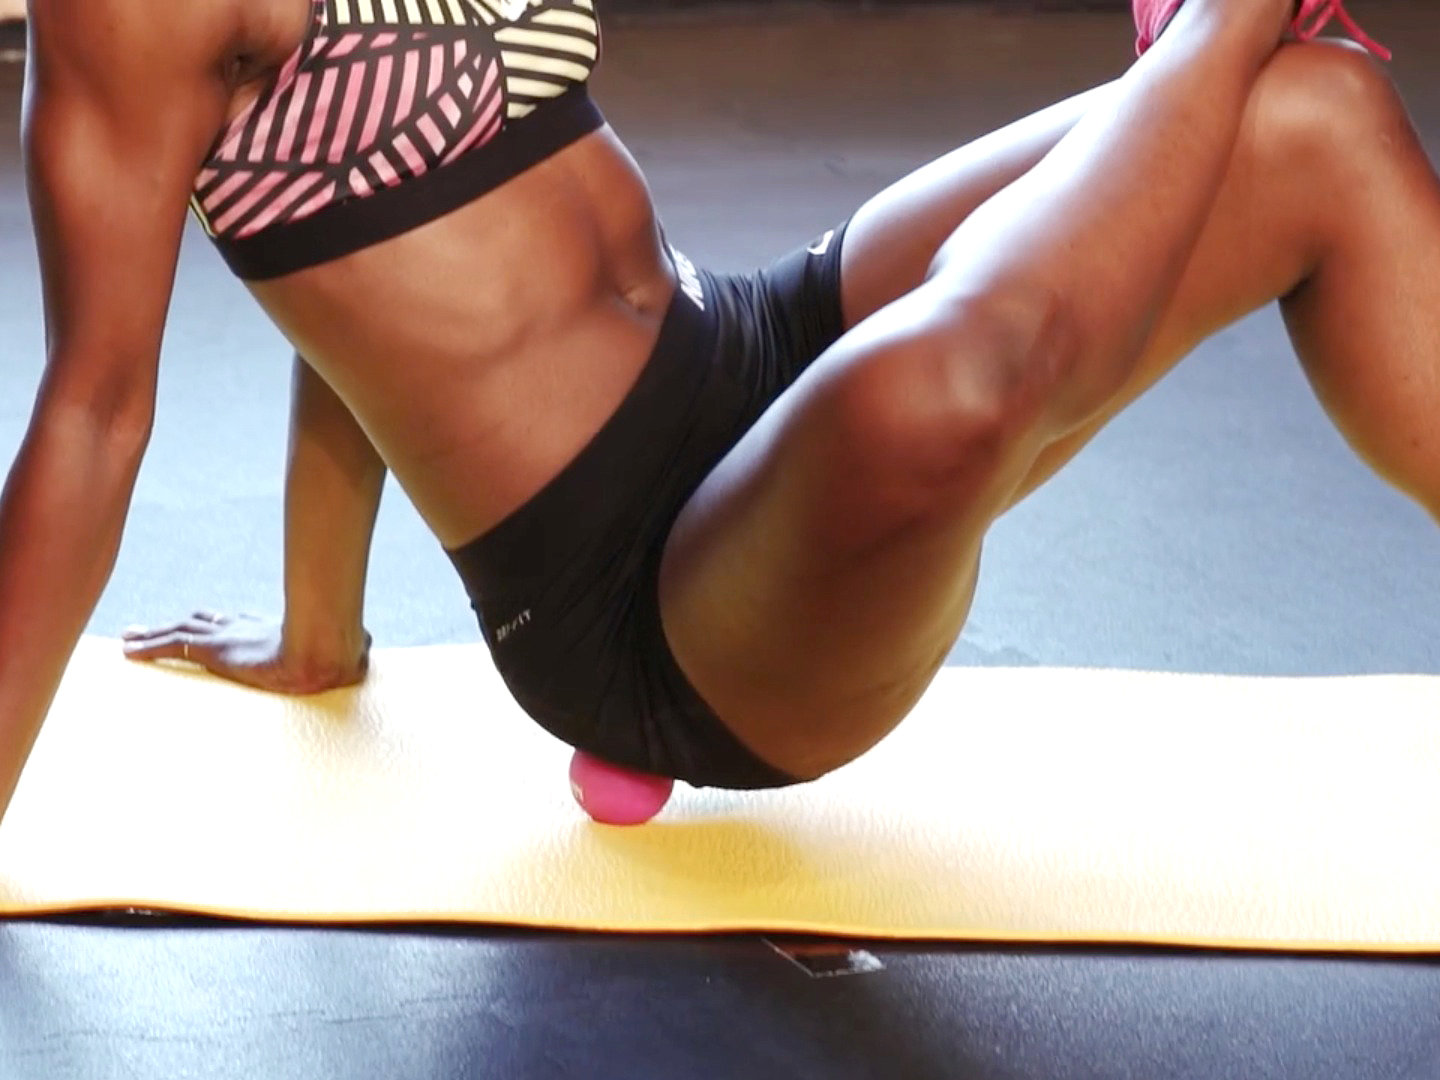 """Lacrosse Ball - No matter what workout you do, it's always important to stretch out after. For especially tight muscle areas, Cynthia uses a lacrosse ball to help """"roll out muscle kinks… especially from twisting and turning in the car to hand my toddlers snacks"""""""